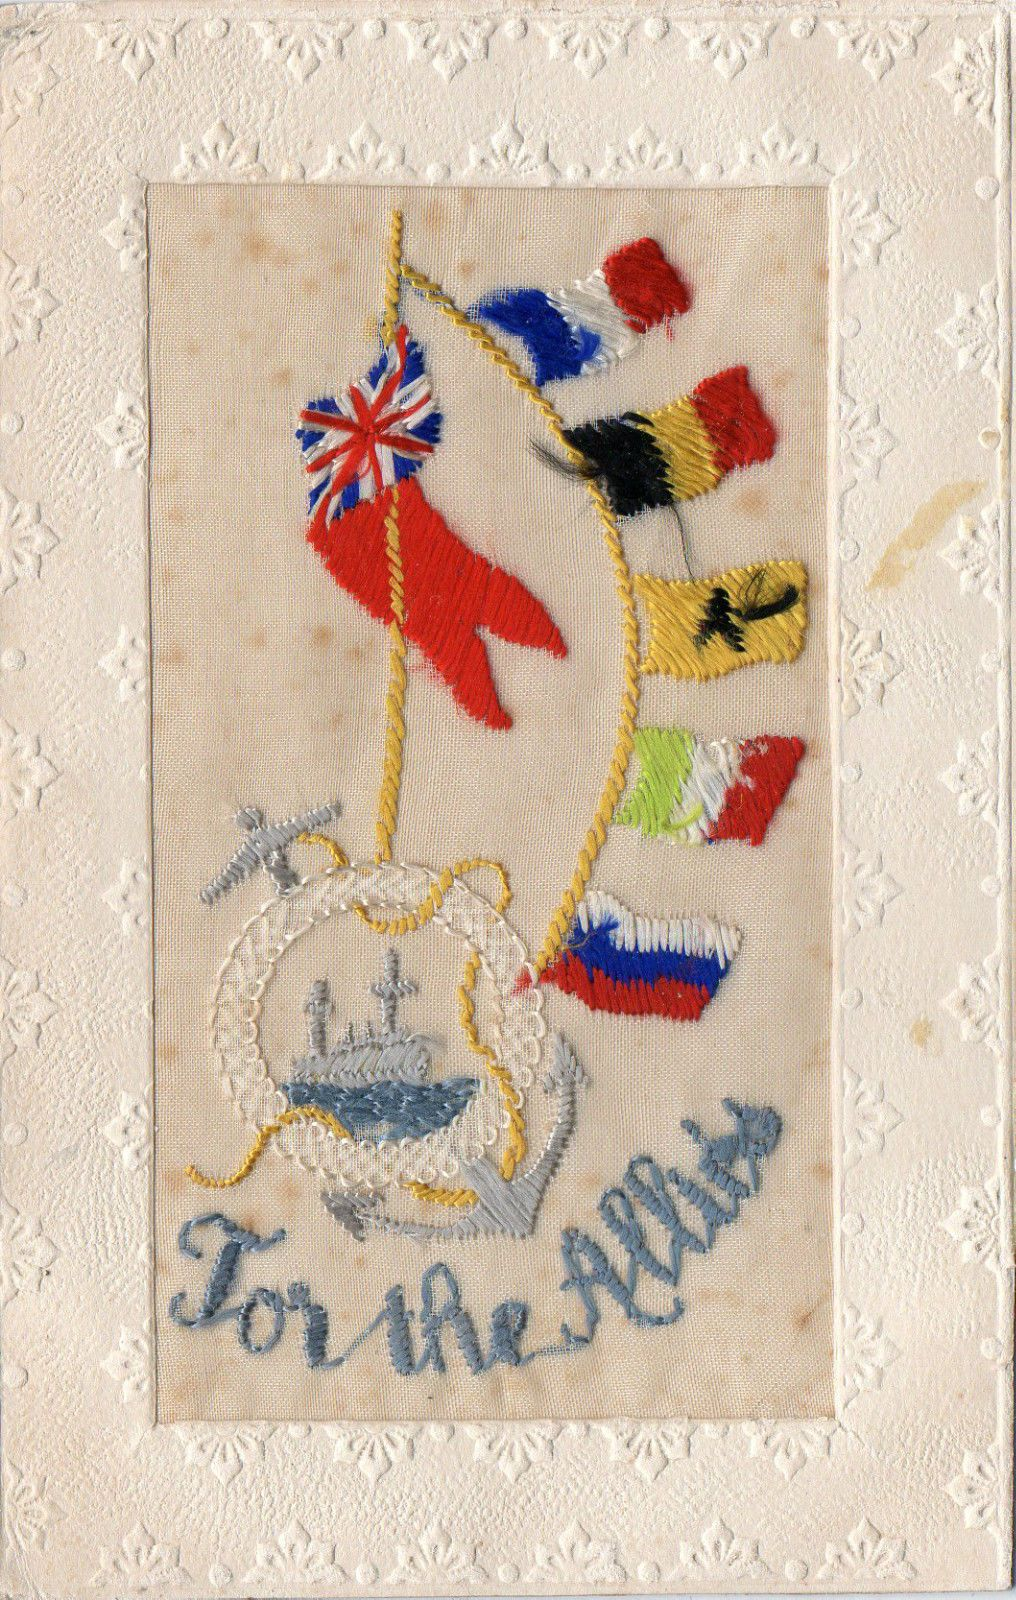 For The Allies: Warship: Ww1 Patriotic Embroidered Silk Postcard • £5.00 • PicClick UK